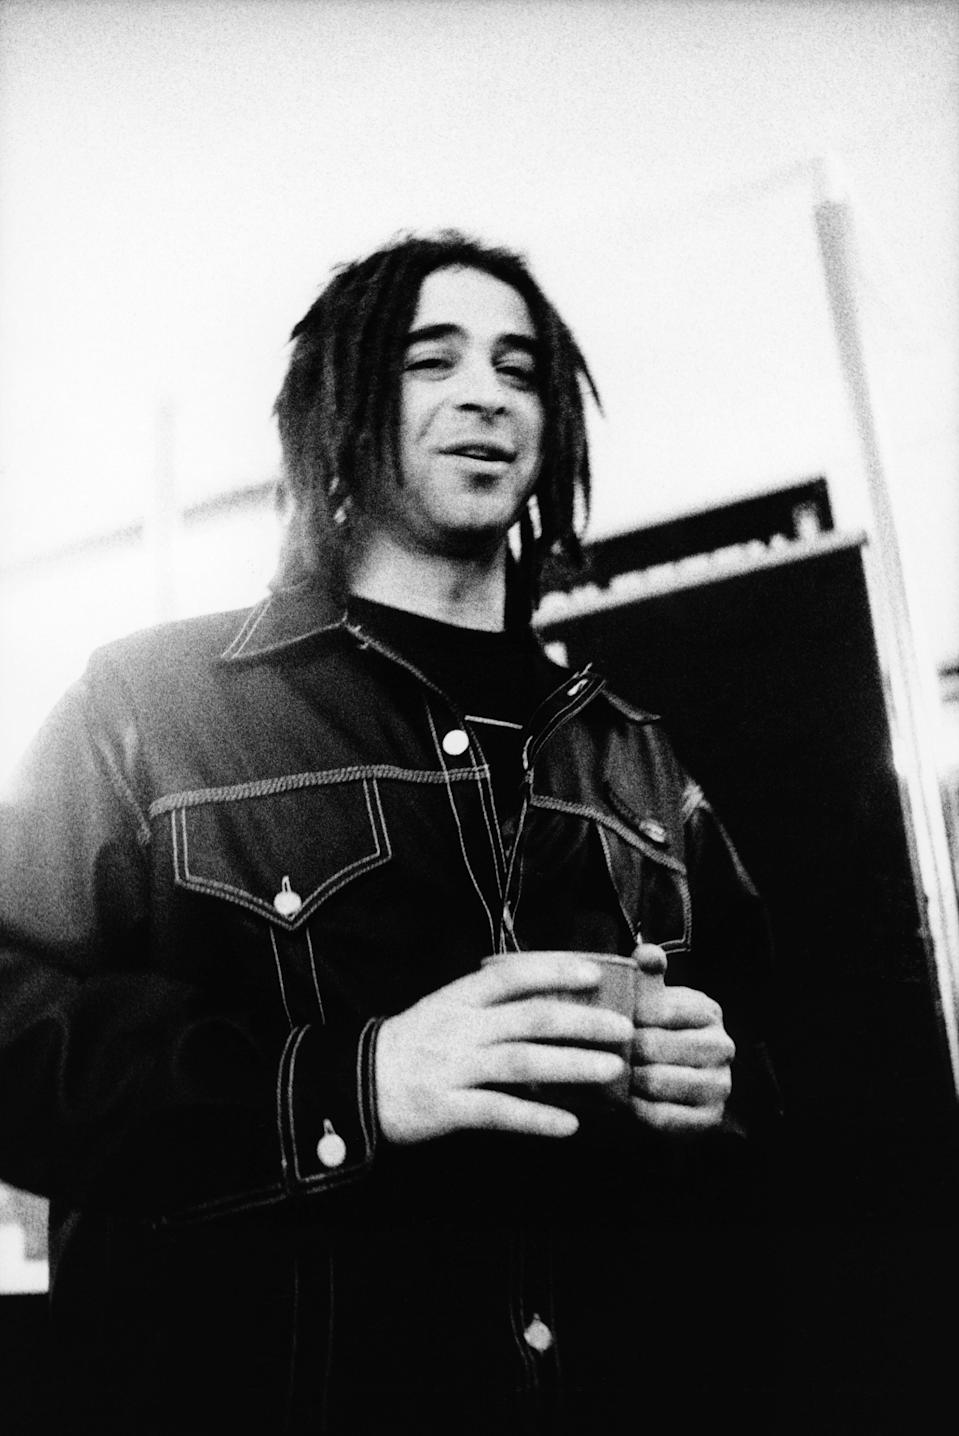 Adam Duritz singer with American band Counting Crows backstage in the Netherlands in 1994